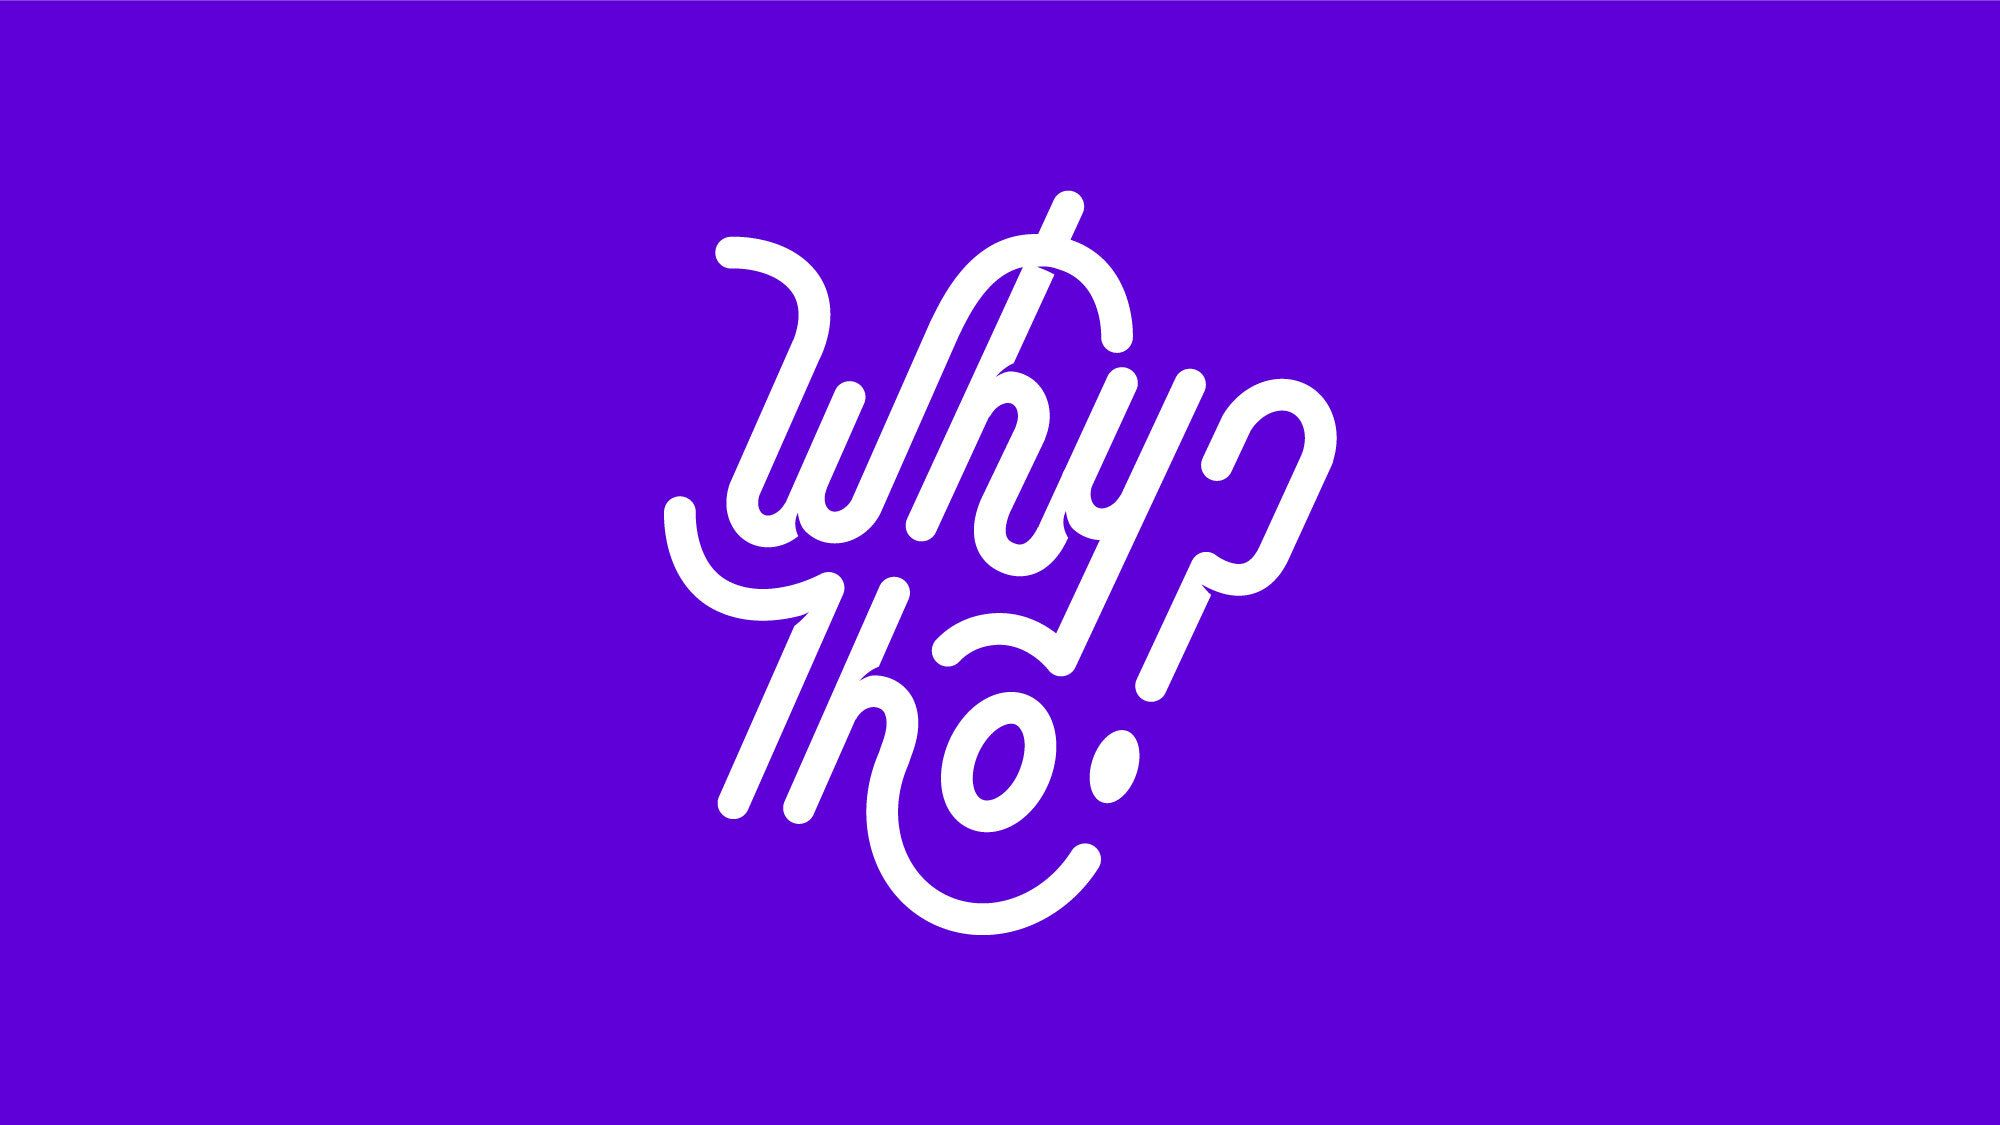 Why Tho Podcast: September 16 - September 22, 2020